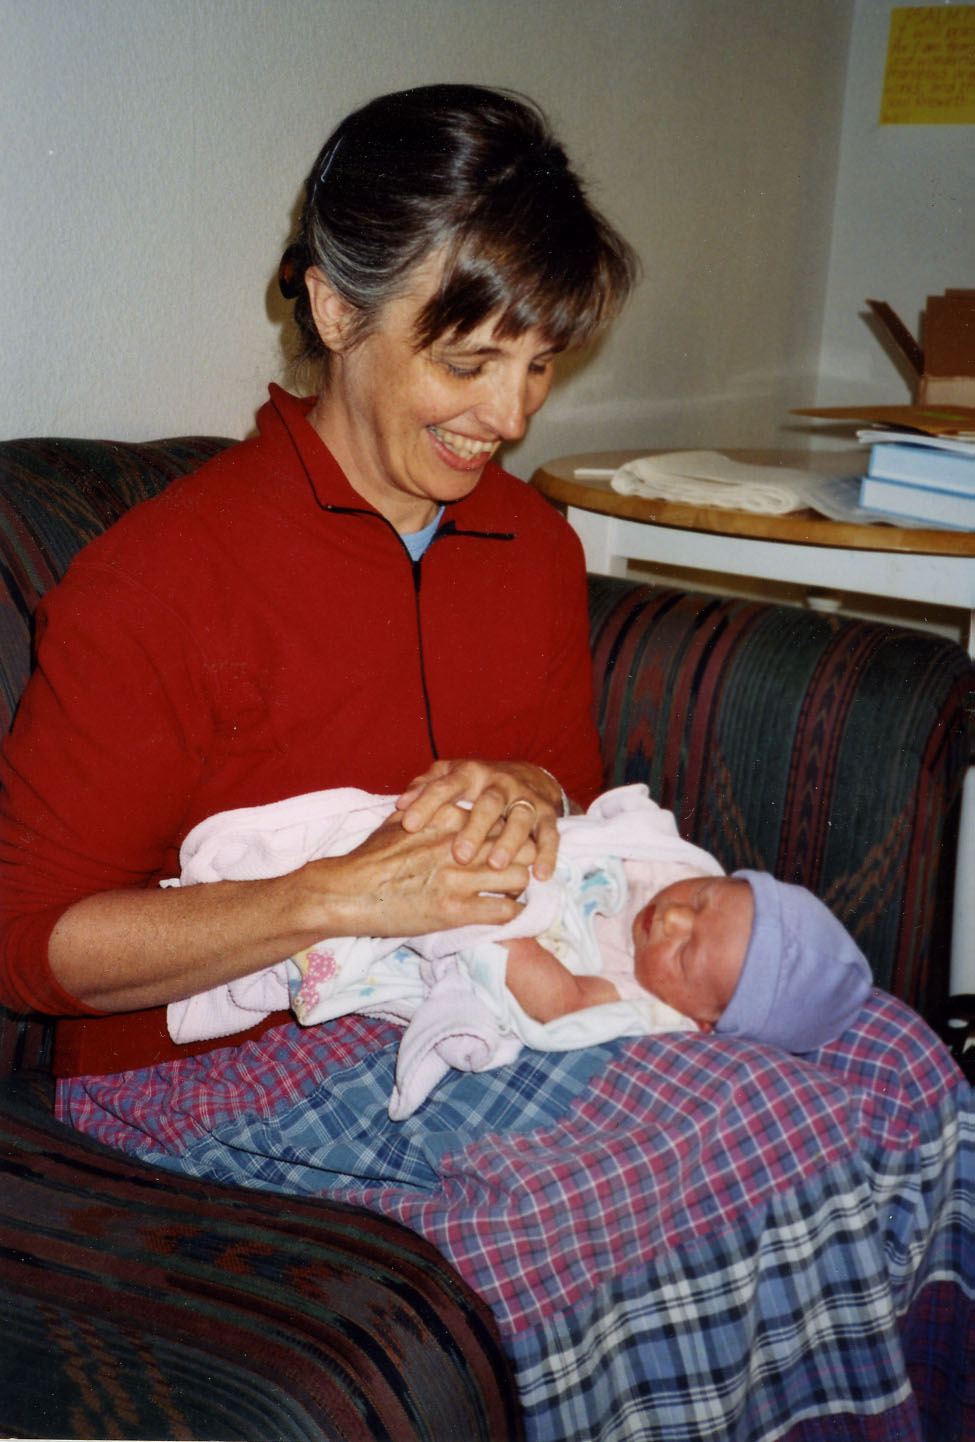 Cath with Baby.jpg